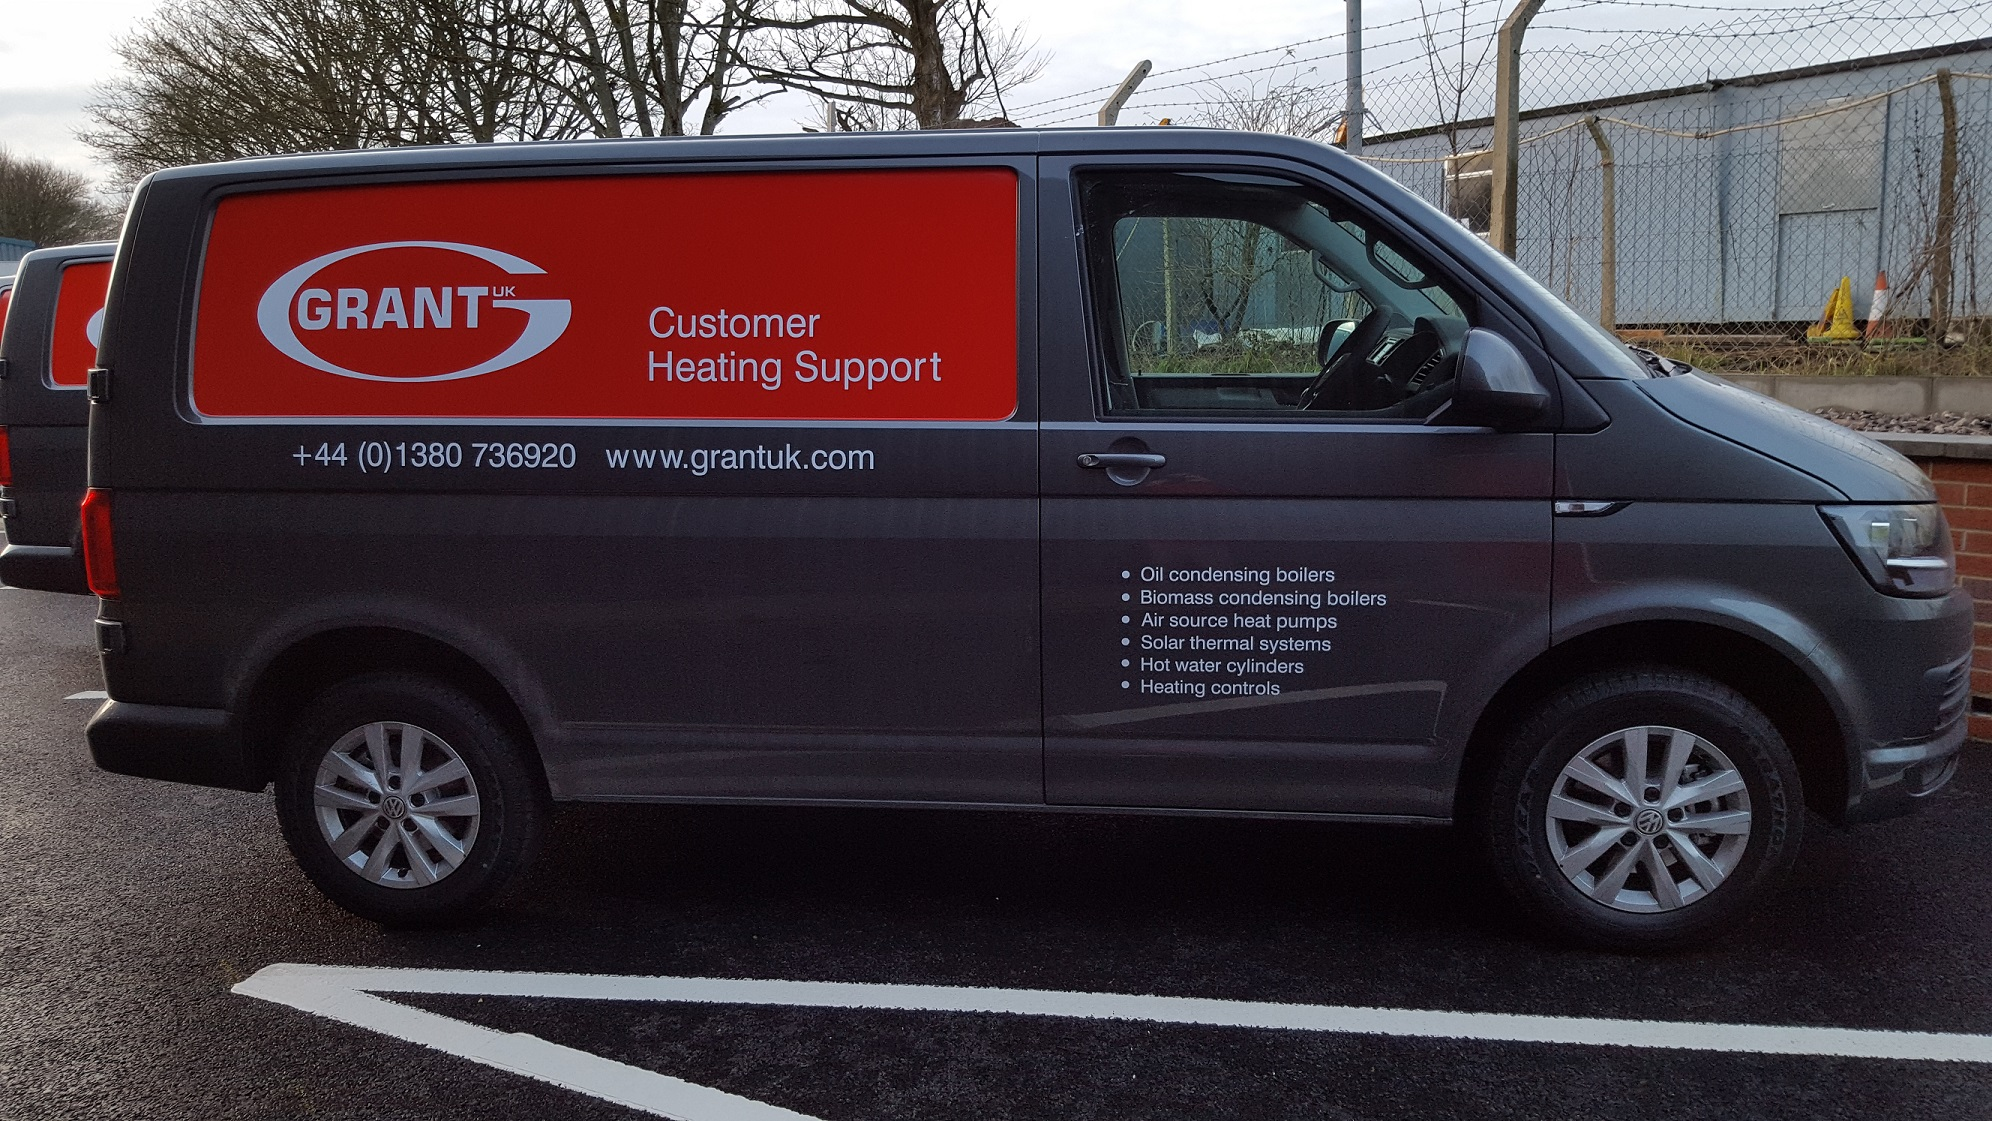 New fleet of Grant UK engineer vans now on the road!